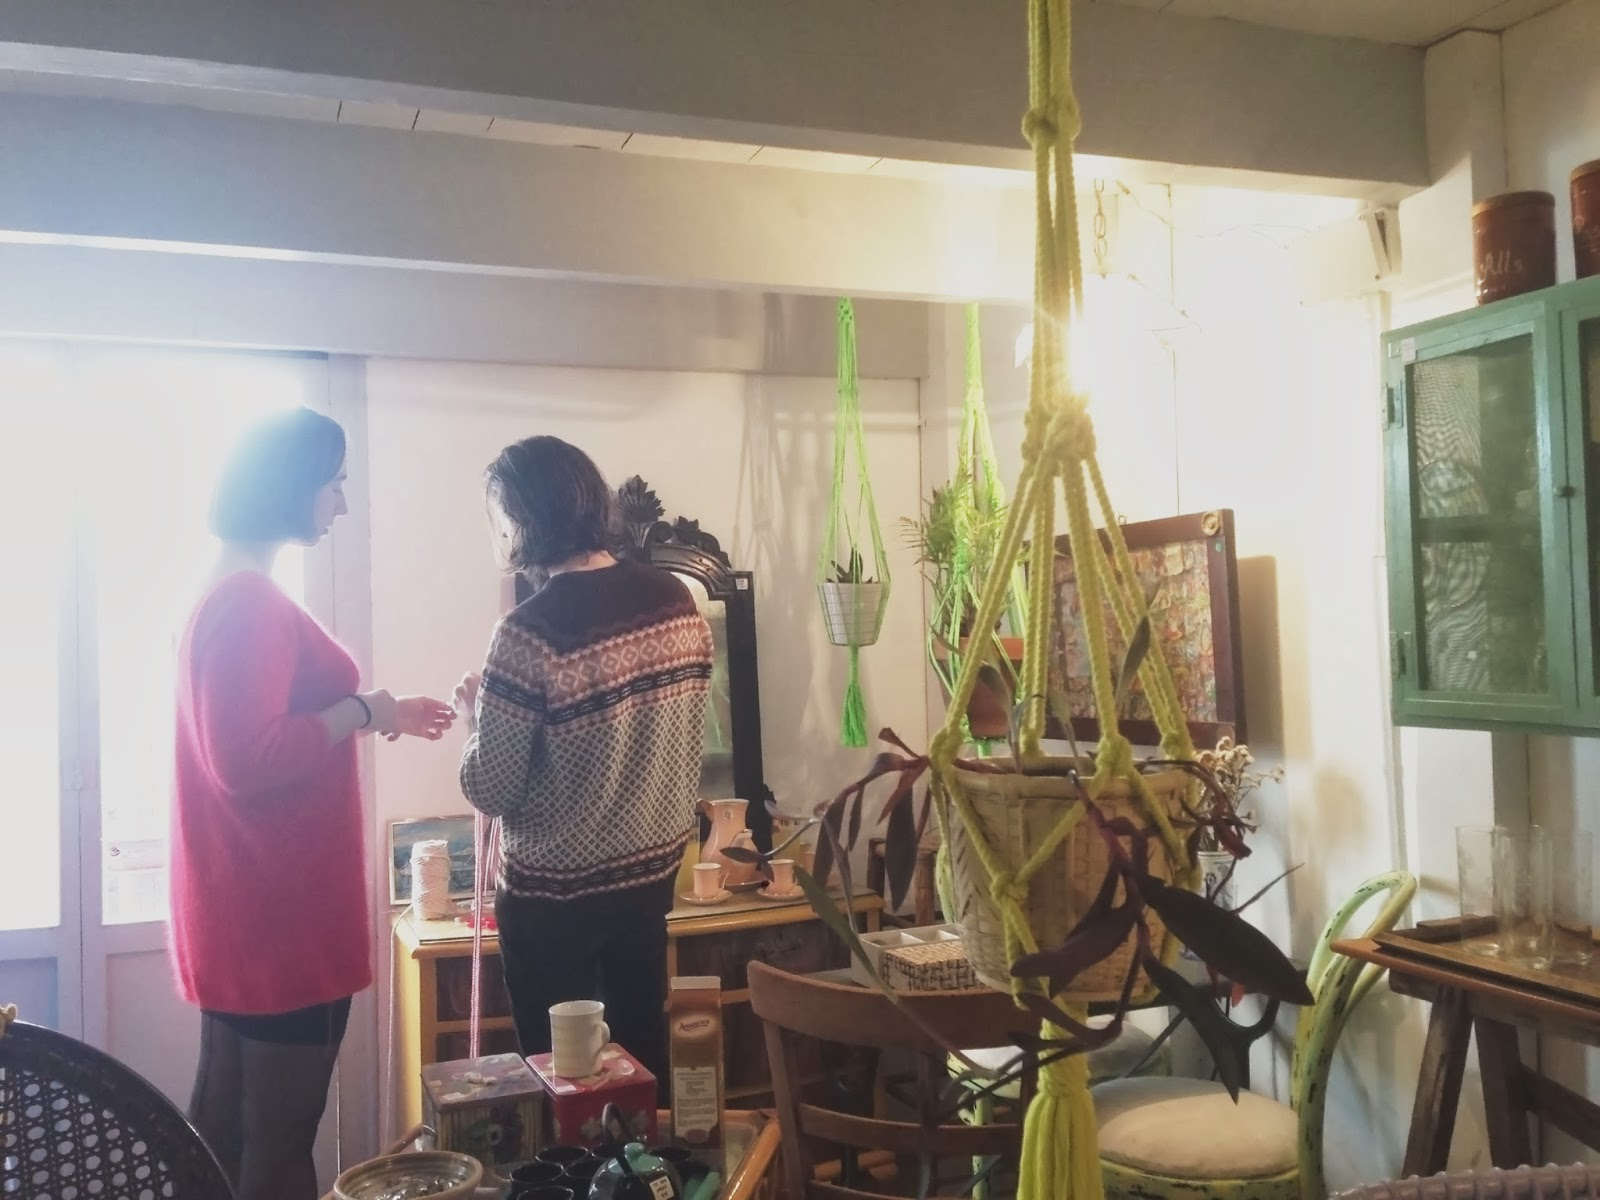 le petit pot: macrame plant hanger workshop in meublé - My Design Meuble